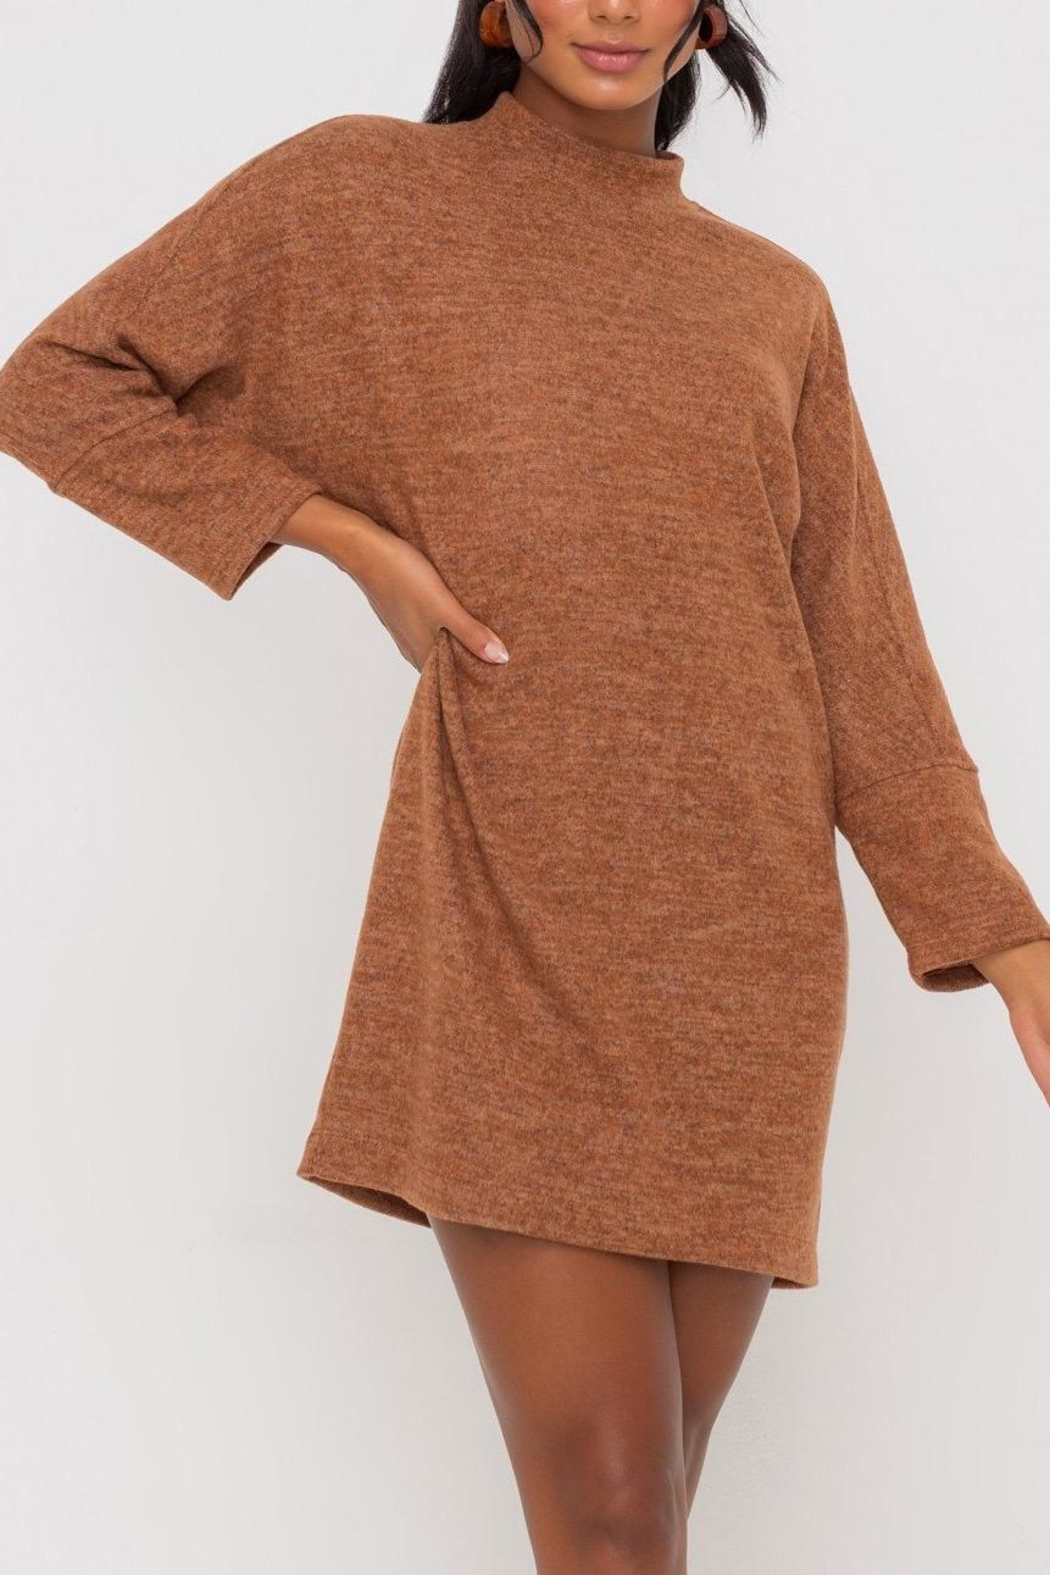 Lush Clothing  Mock-Neck Knit-Dress - Hazel - Side Cropped Image